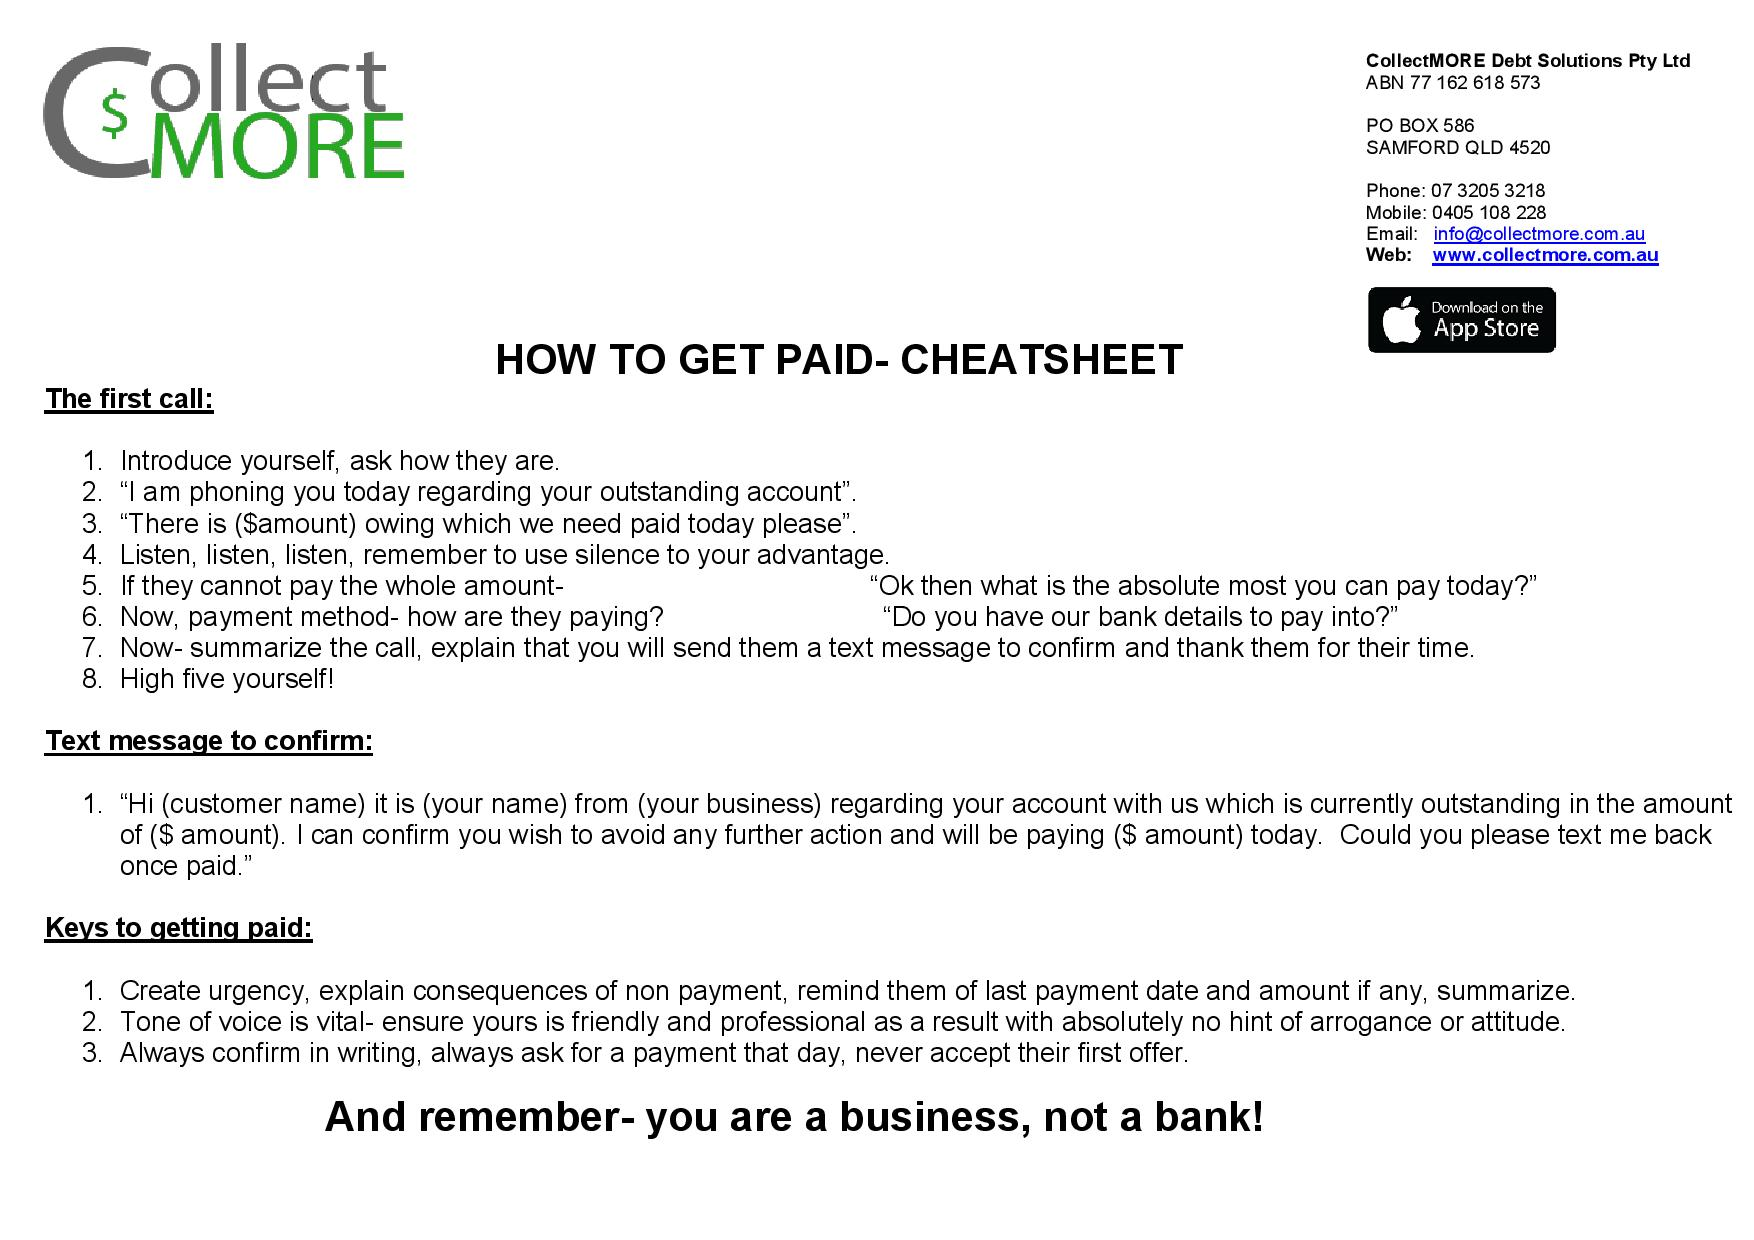 How to get paid Cheat Sheet! - Collectmore Pty Ltd